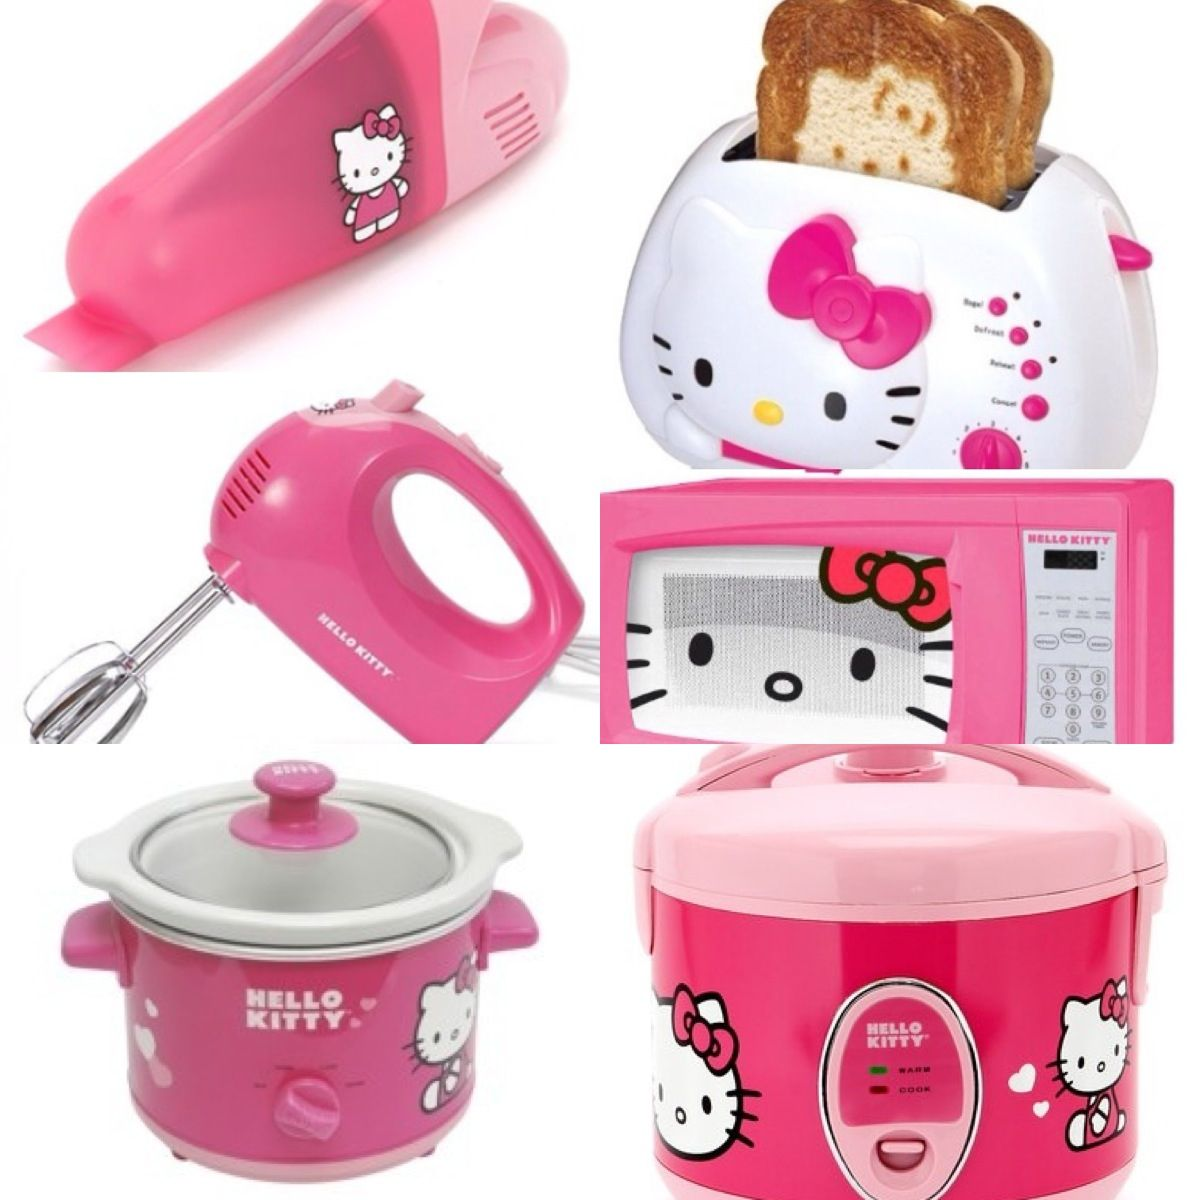 Hello Kitty Kitchen Accessories: Hello Kitty Kitchen Appliances From Target